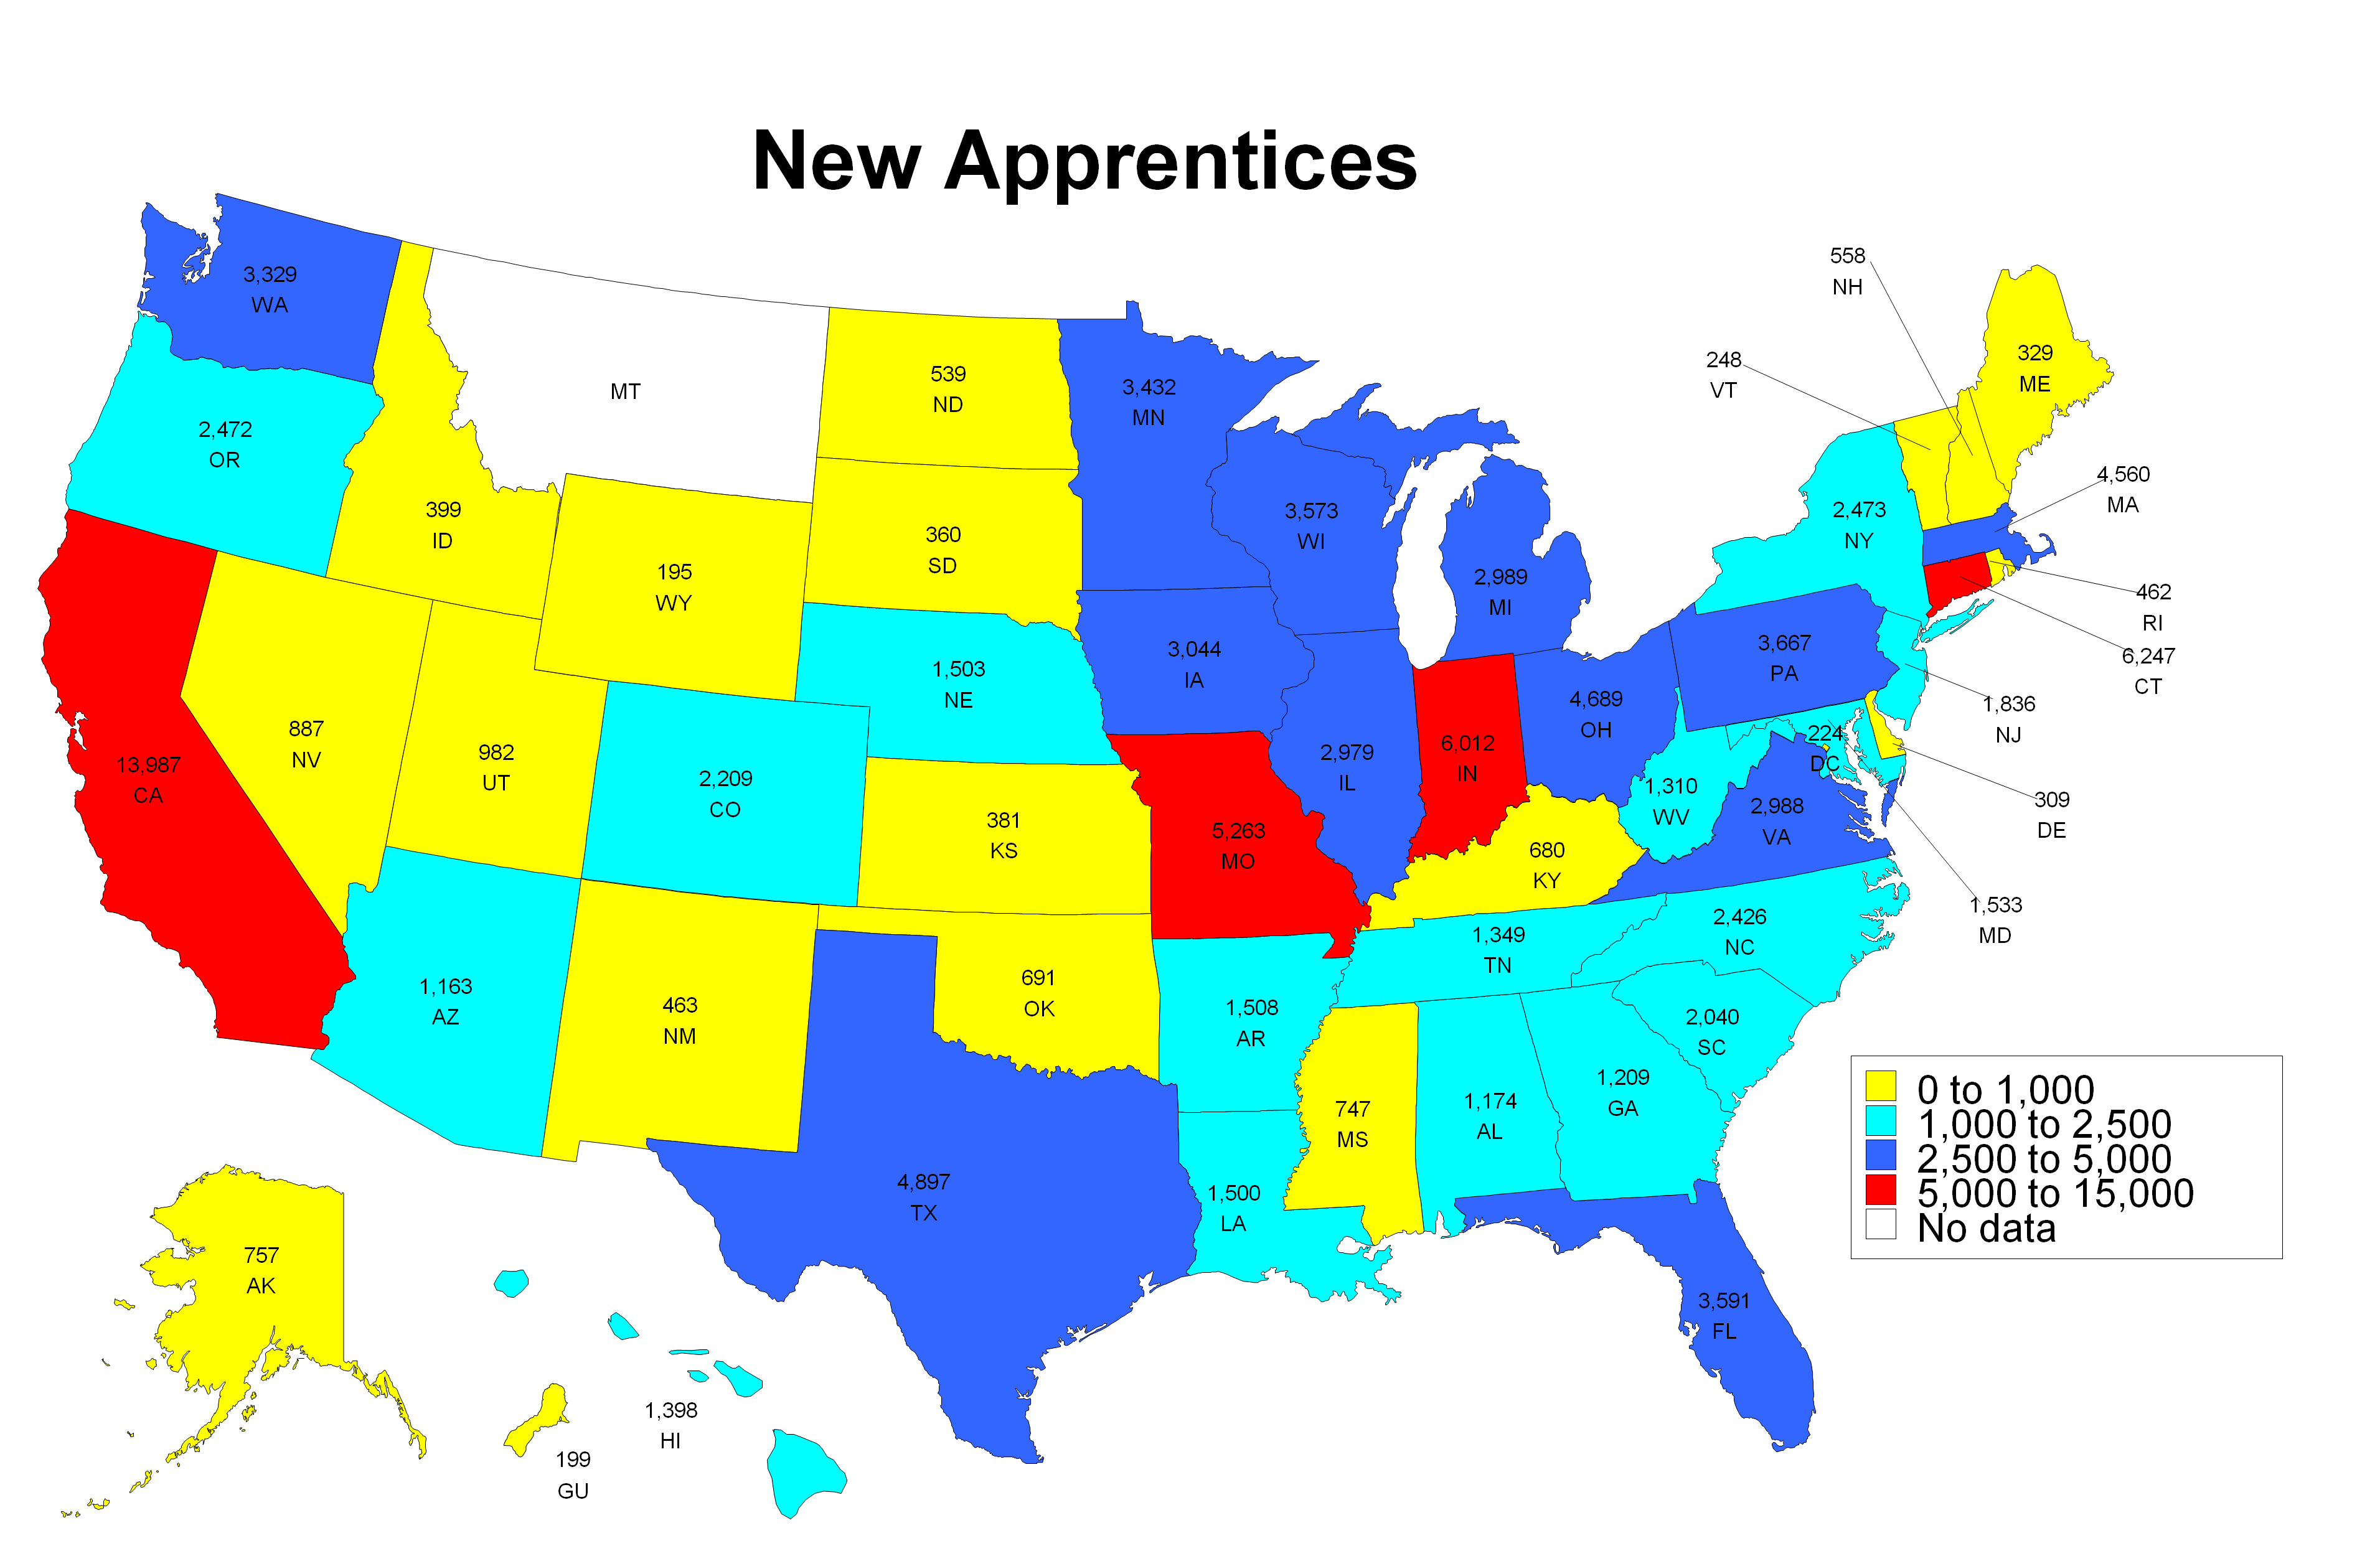 New Apprentices Map 2013